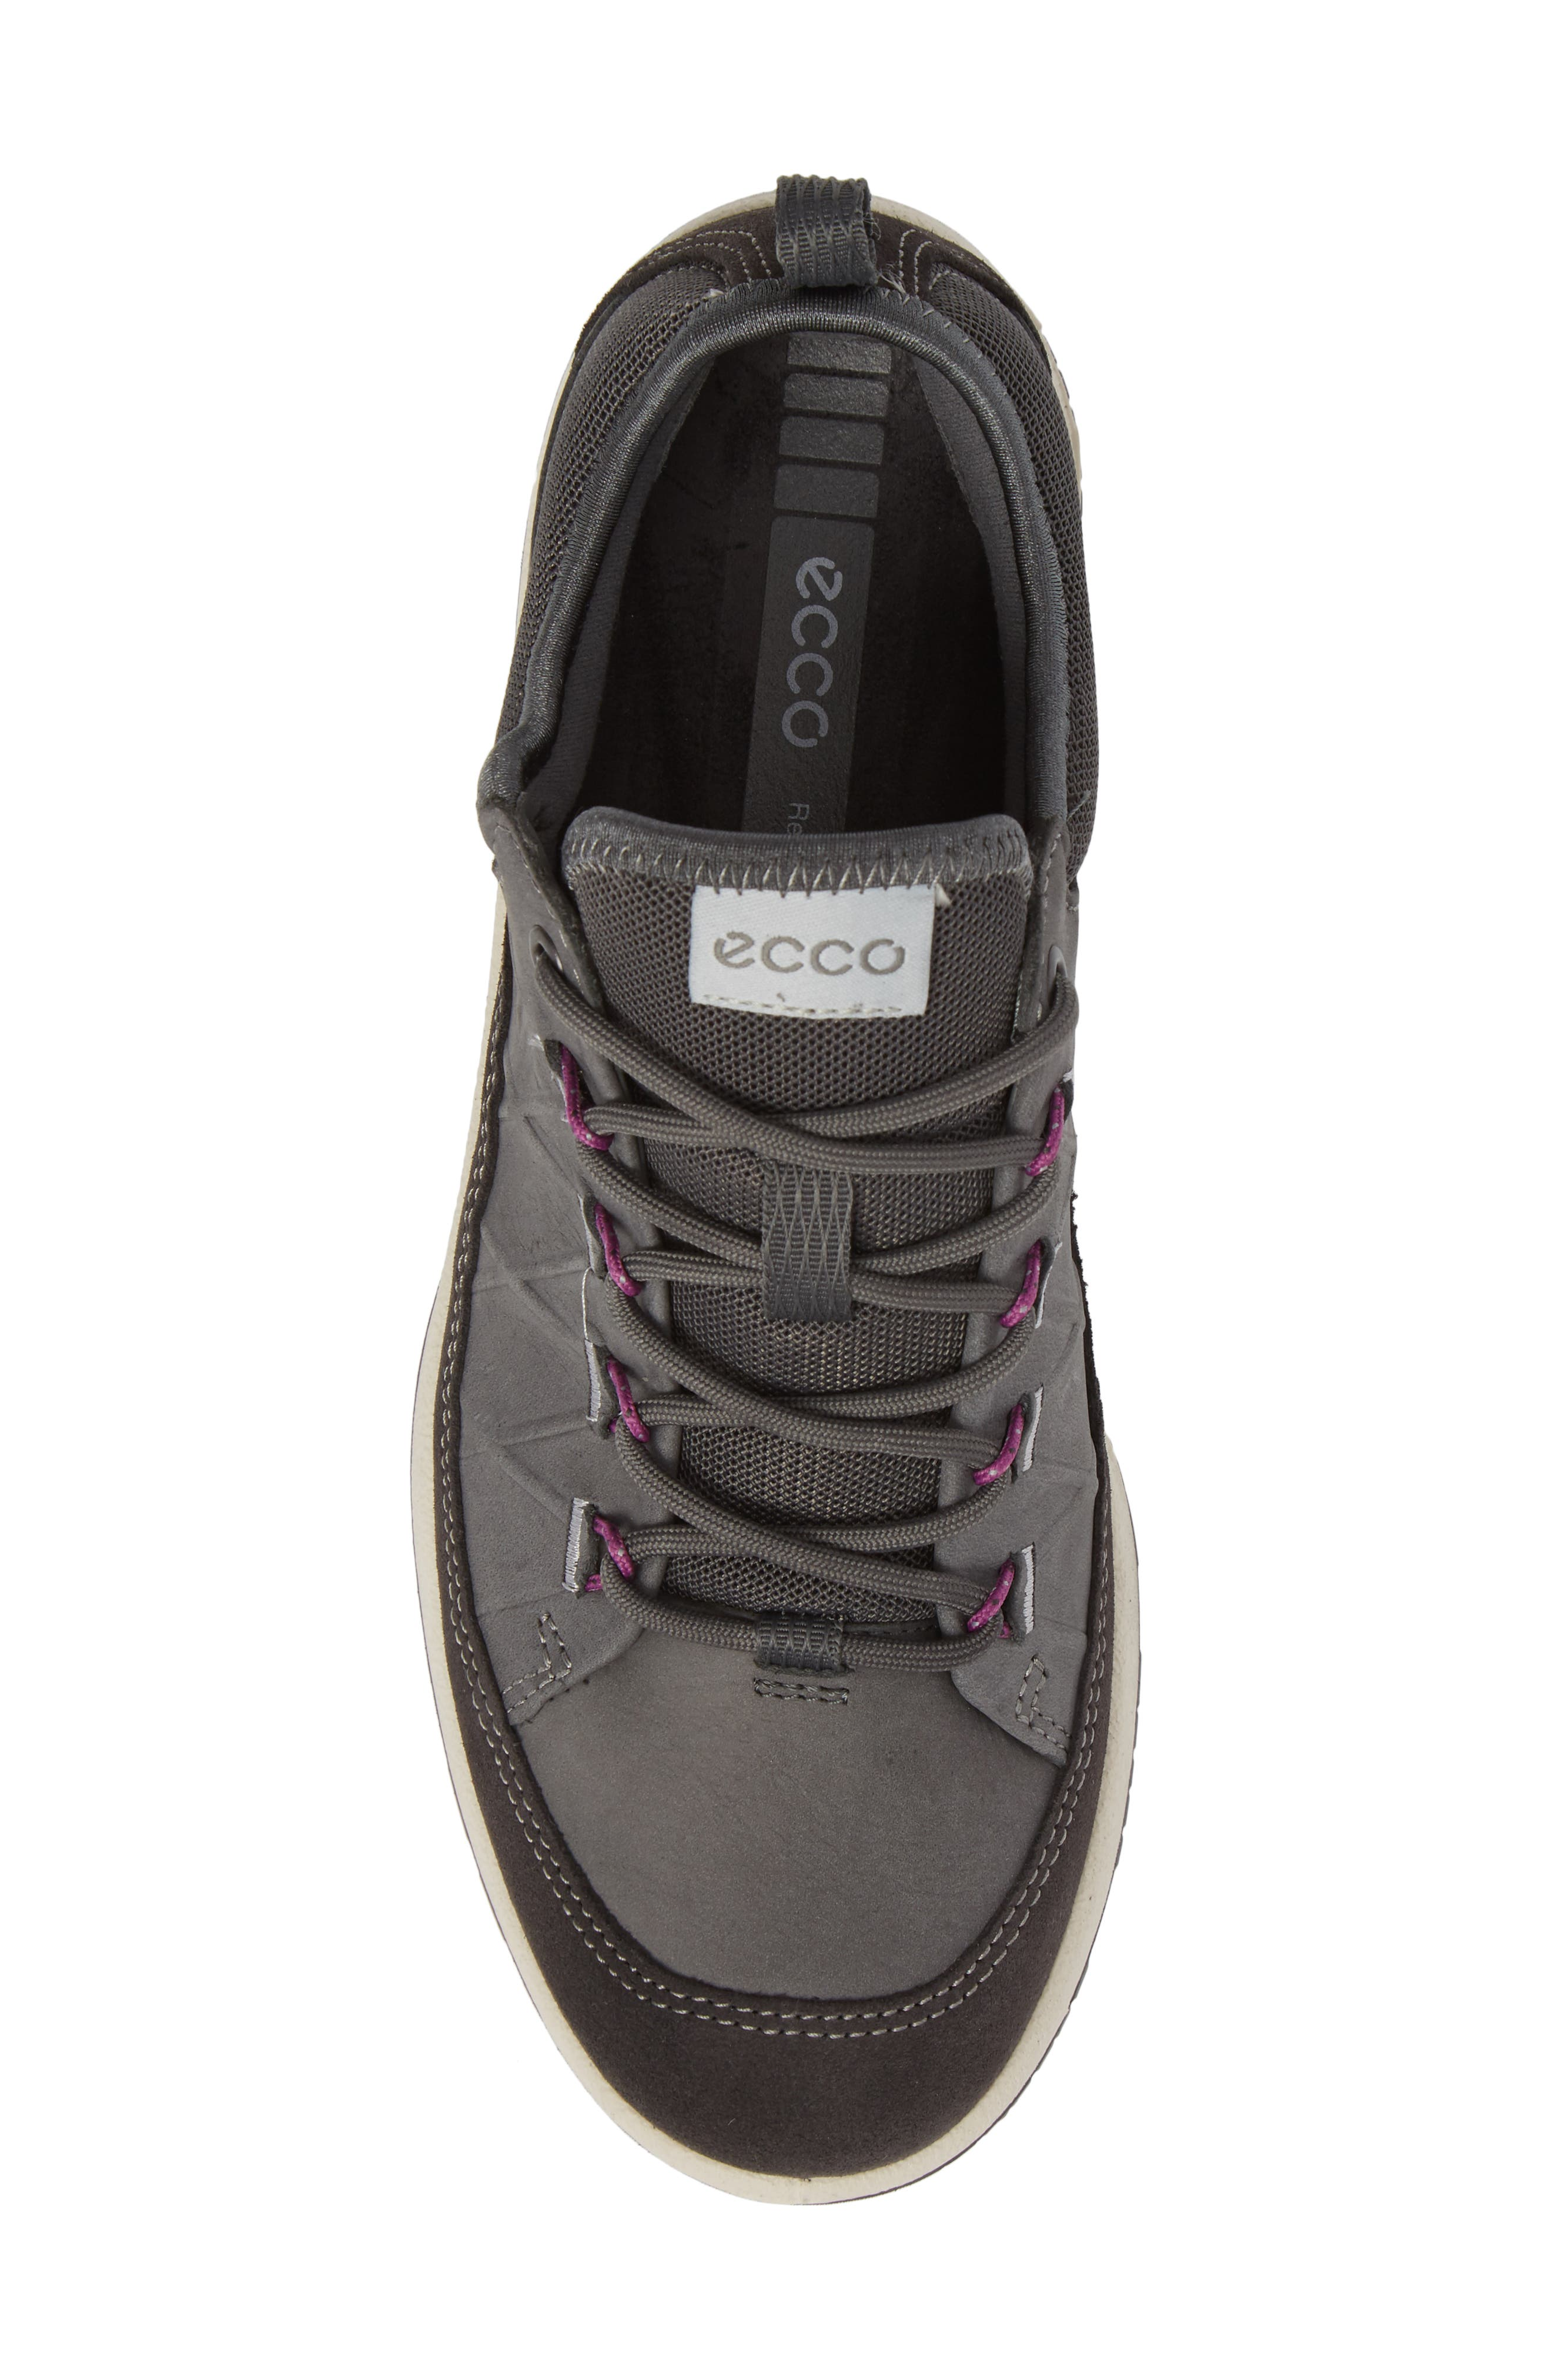 'Aspina' Sneaker,                             Alternate thumbnail 5, color,                             Moonless Leather